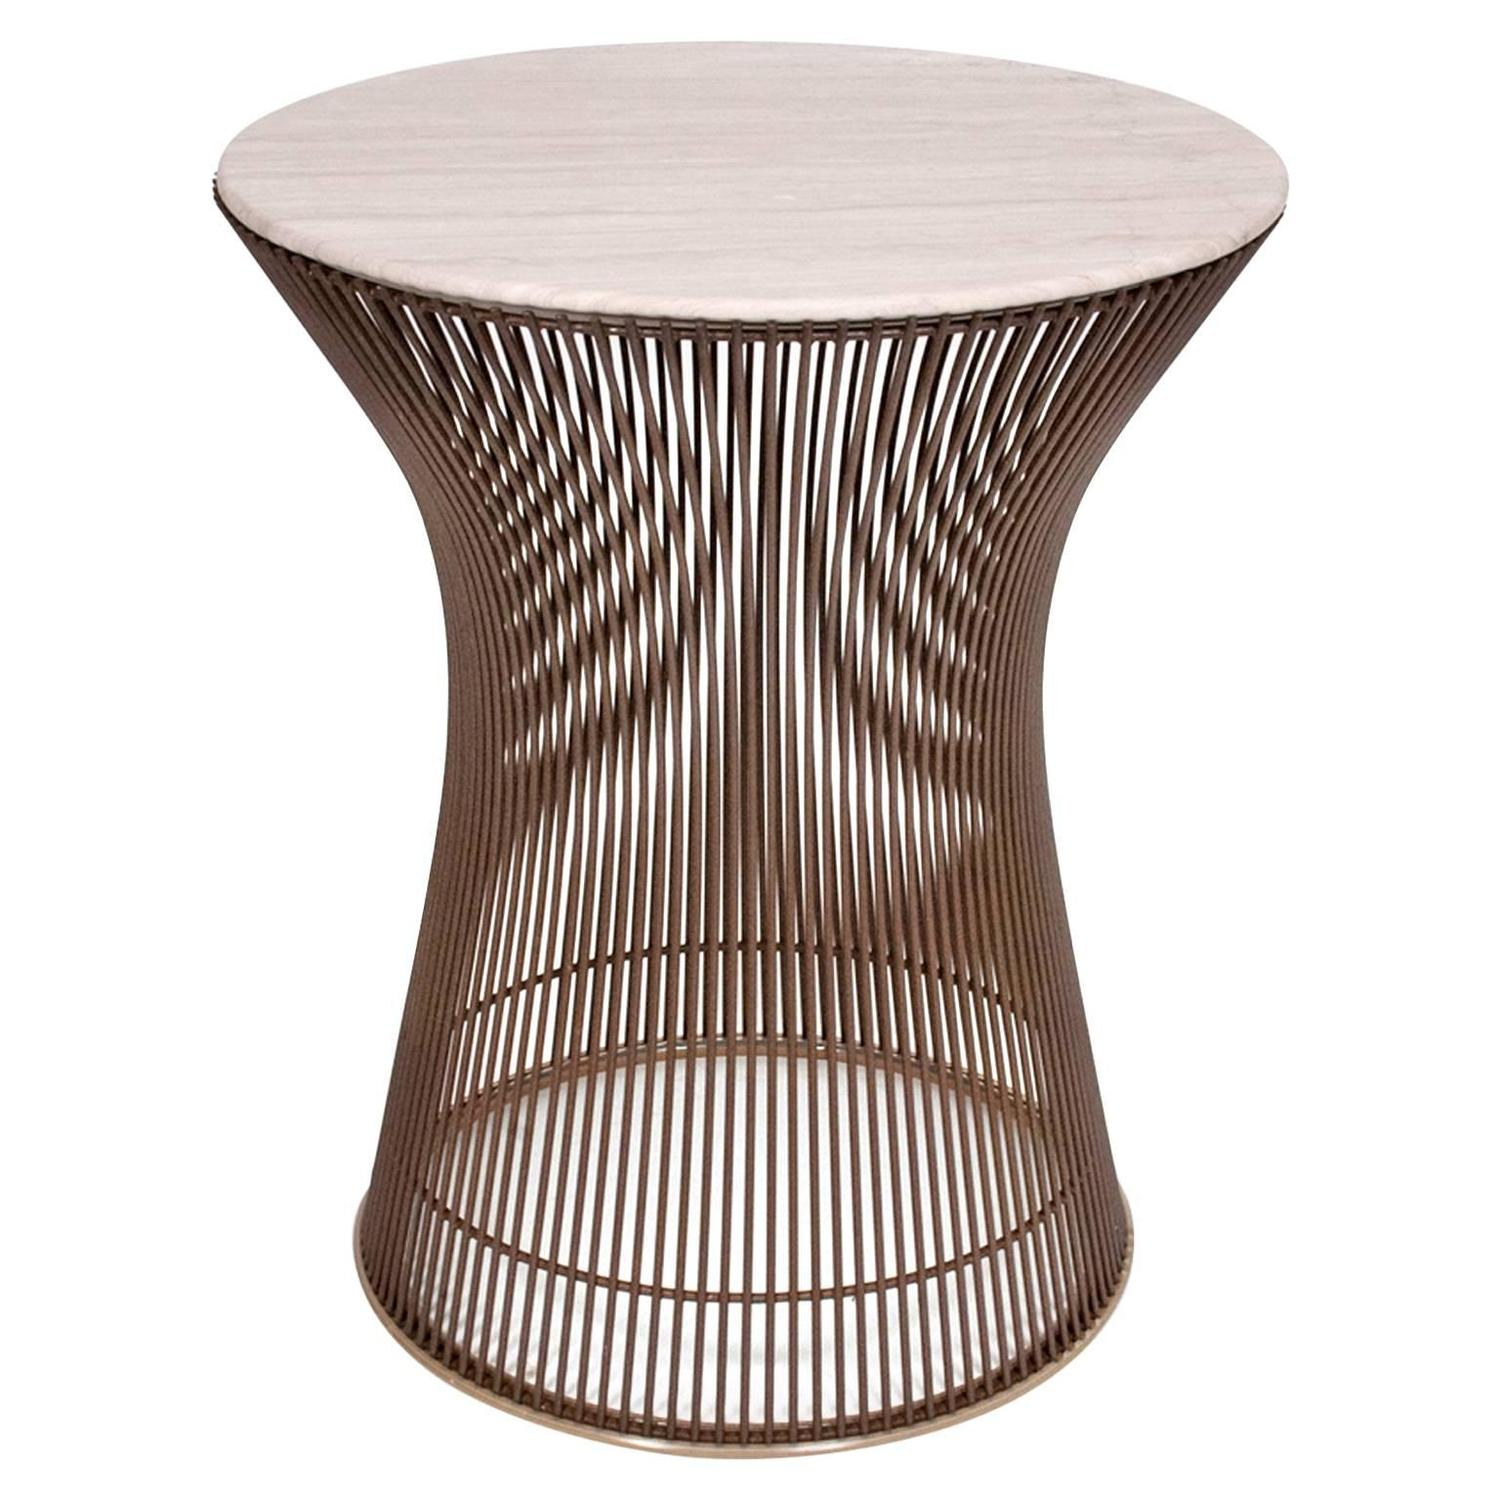 Warren platner bronze finished base side table at 1stdibs for Side table base